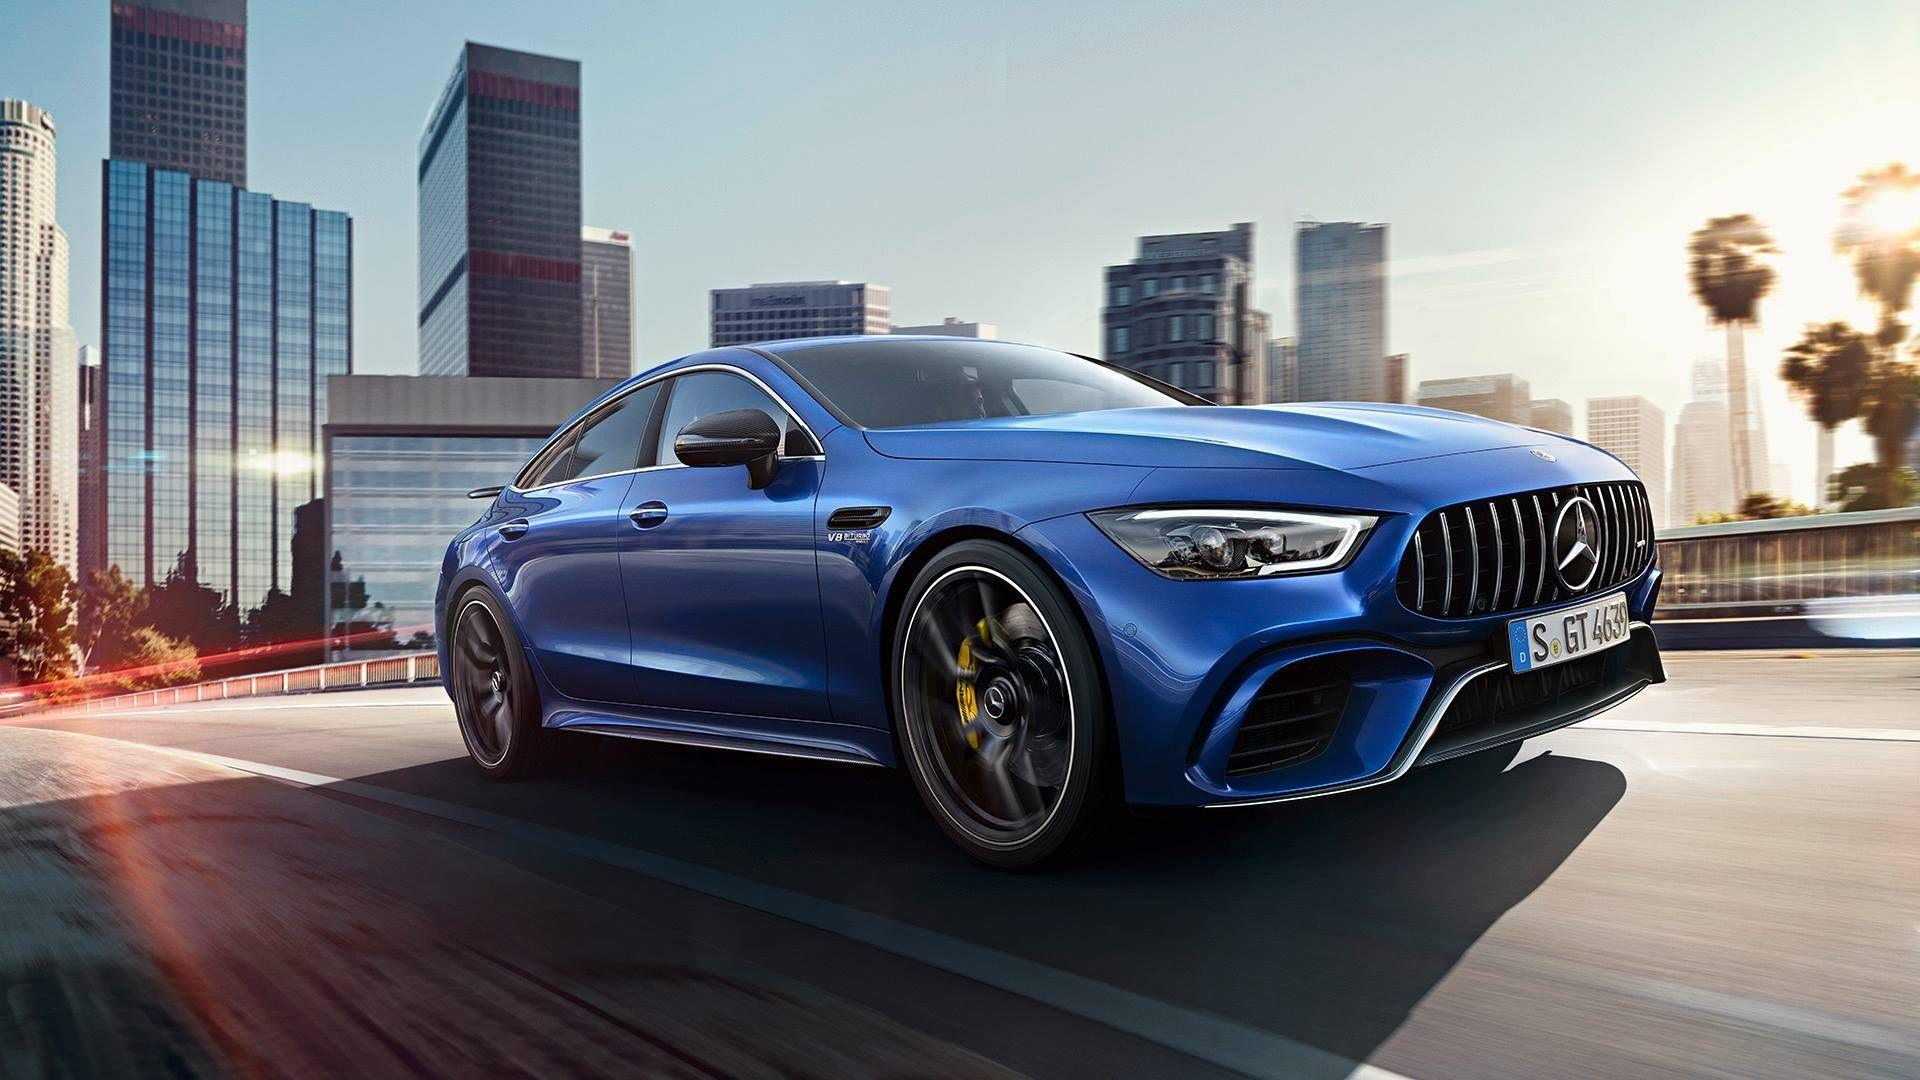 Mercedes-AMG GT 63 S Coupe Wallpapers - Wallpaper Cave